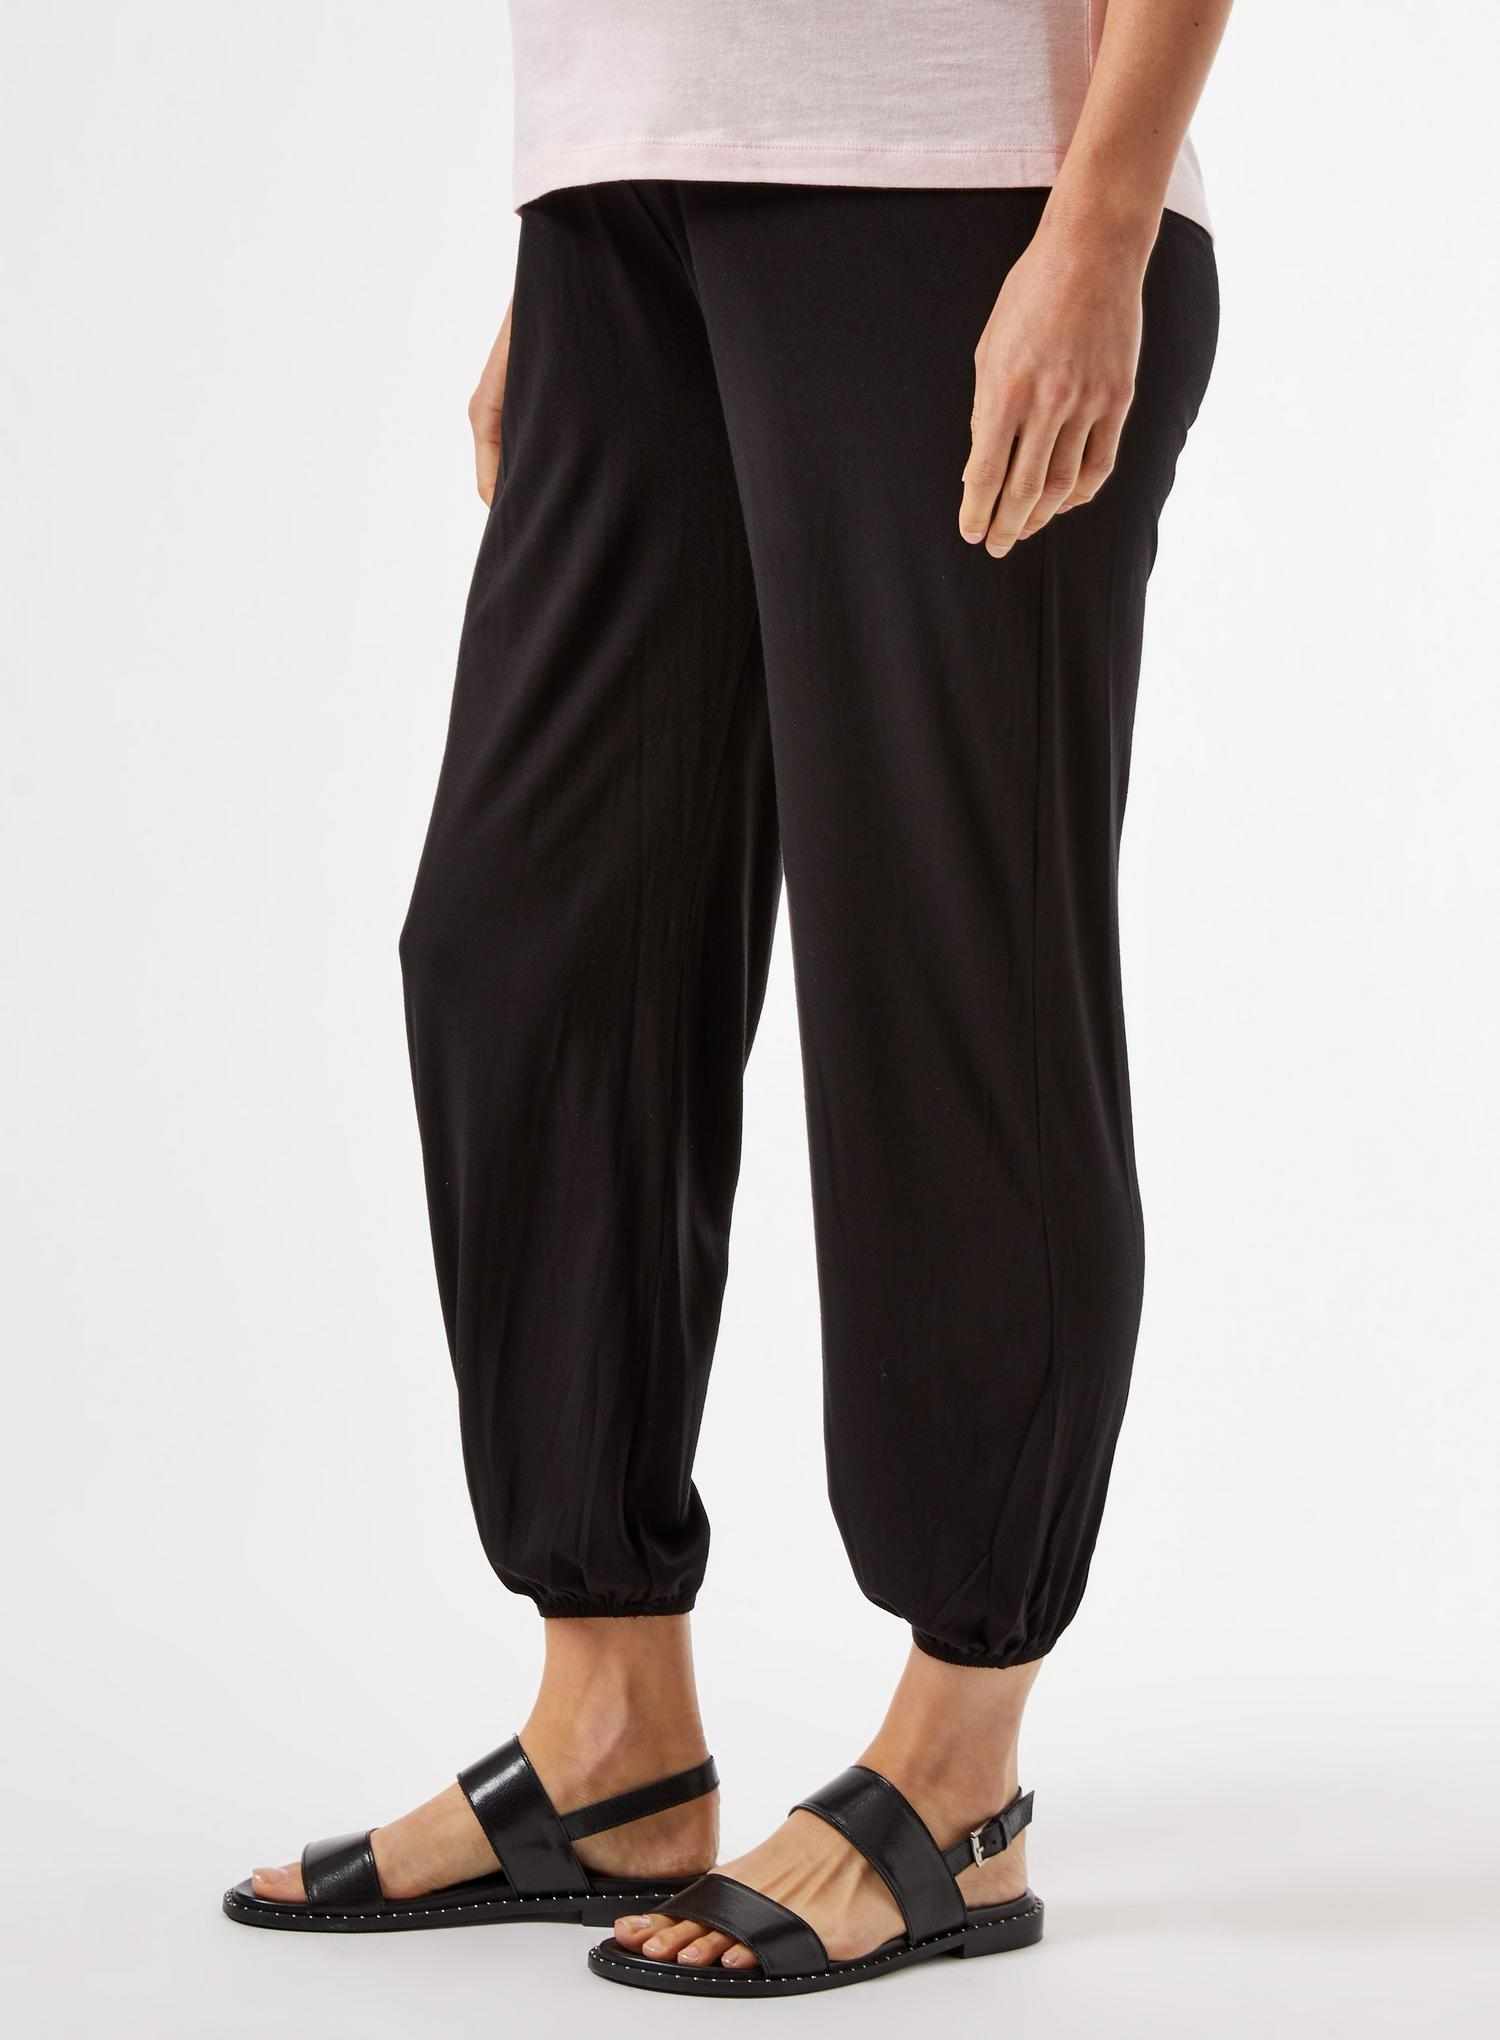 105 Maternity Black Joggers image number 3